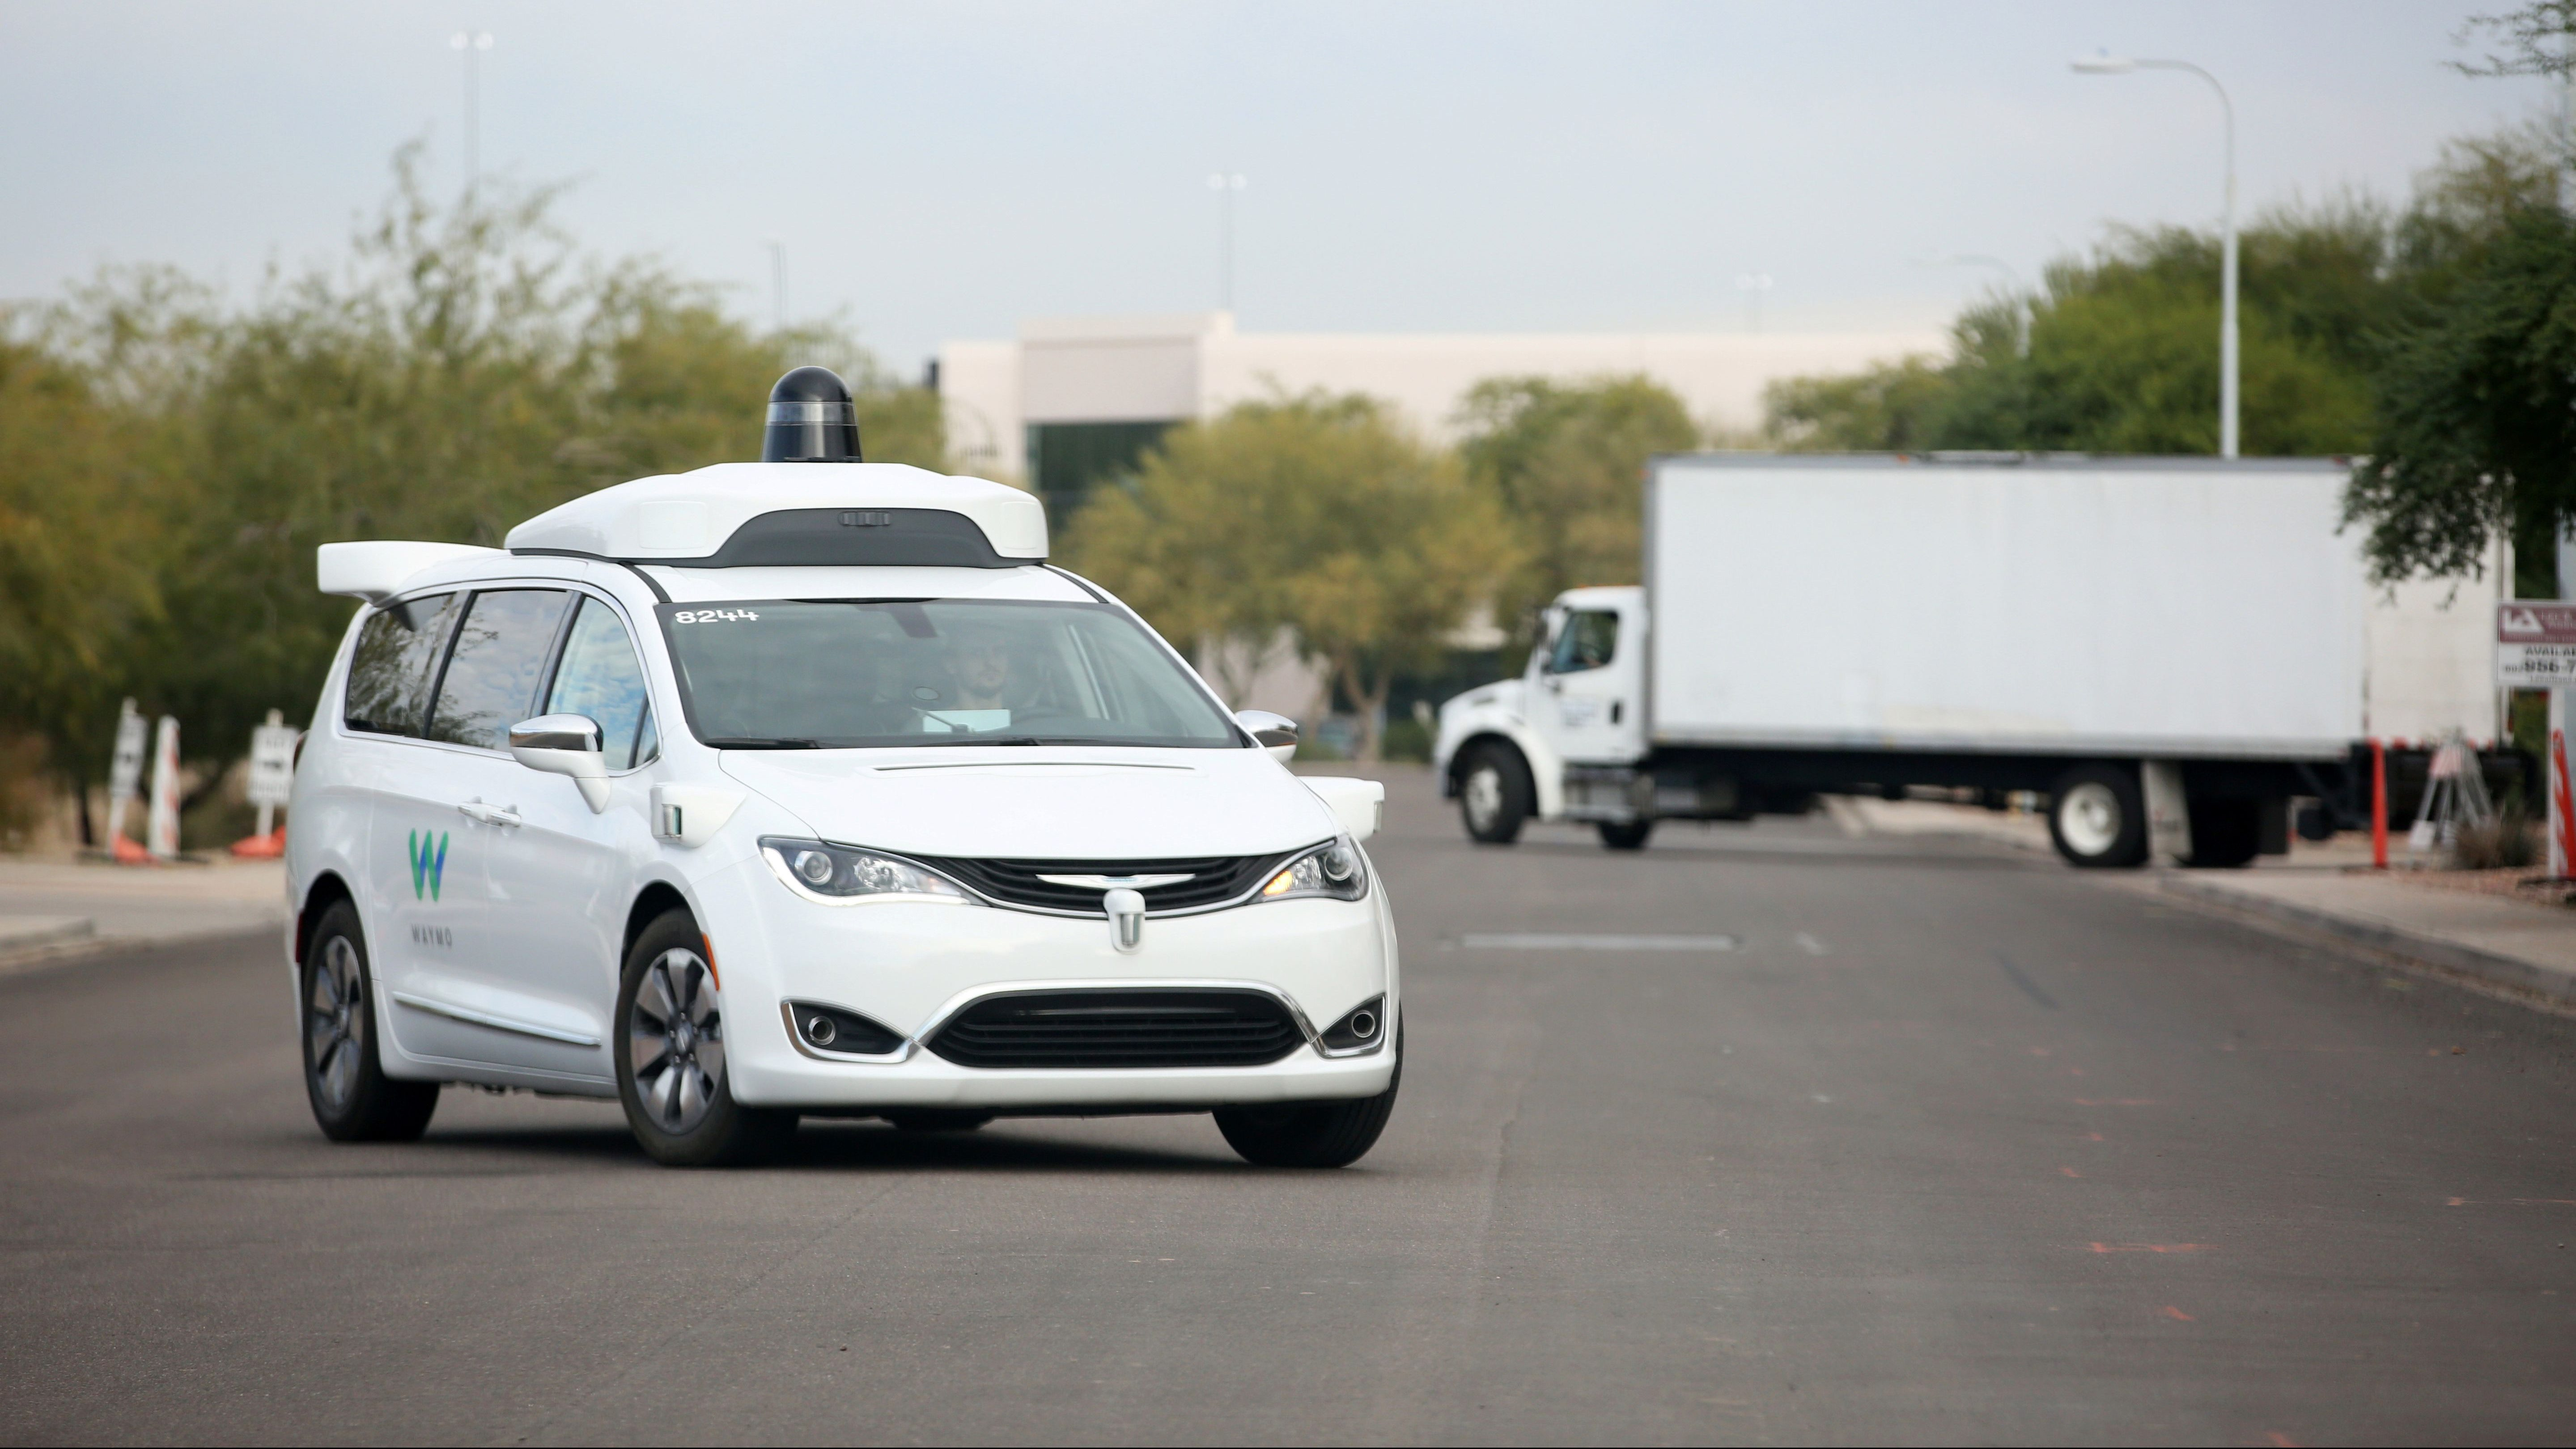 Arizona residents lash out against Waymo self-driving cars